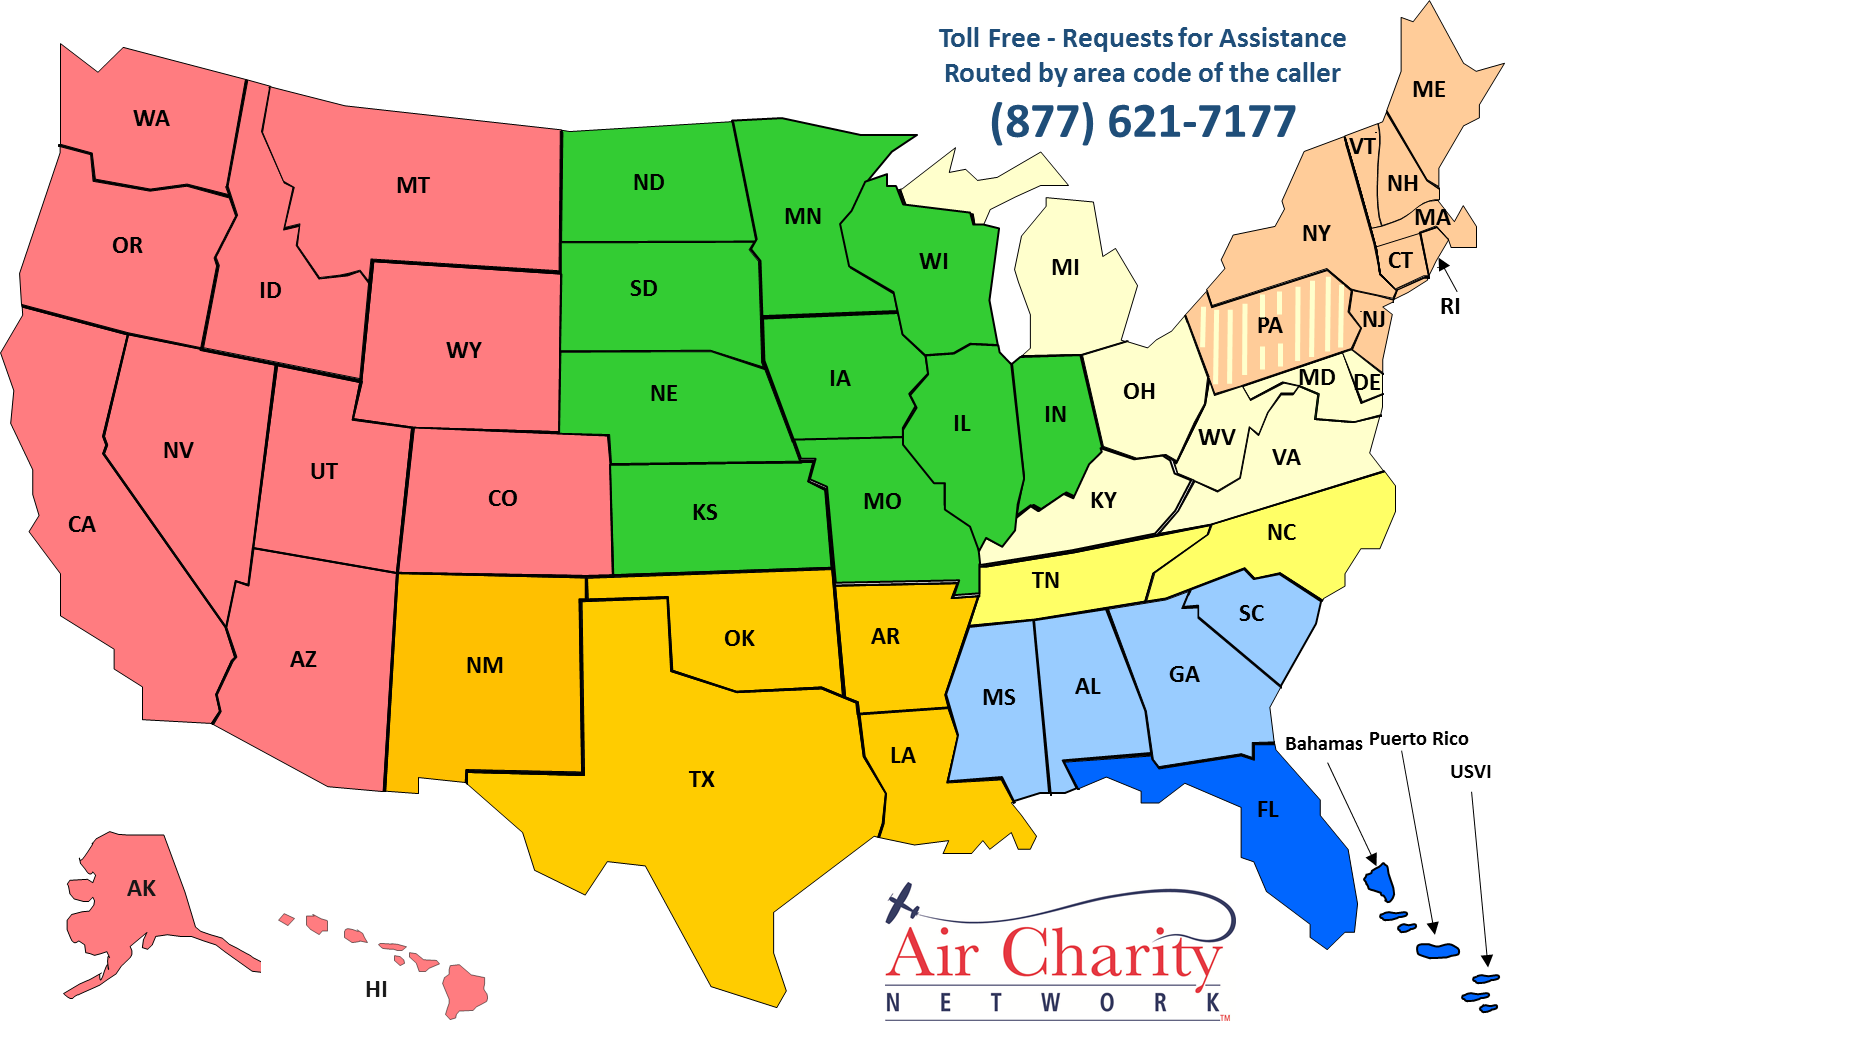 Request a Flight | Air Charity Network